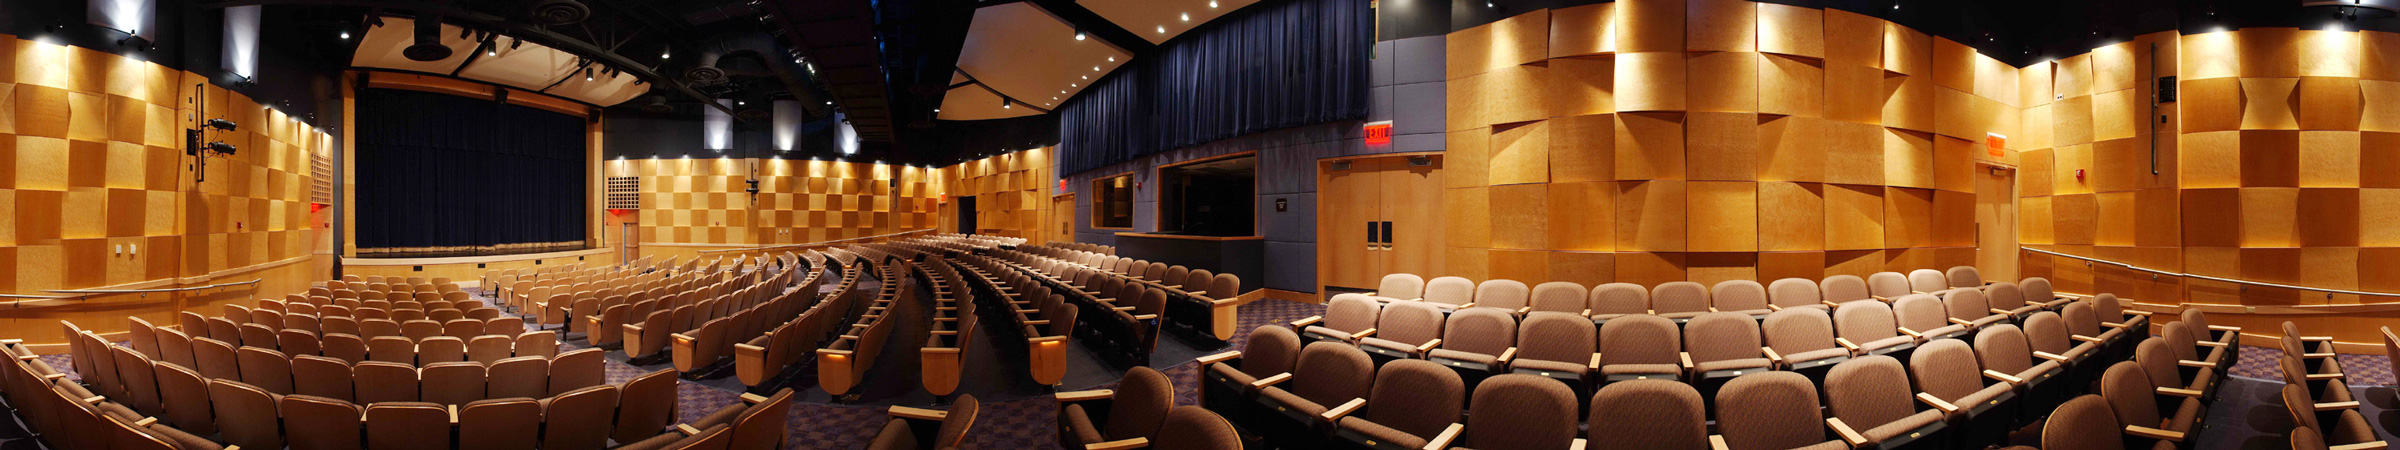 Sanply-maple-be-fla-mem-auditorium-360_8009900518_o